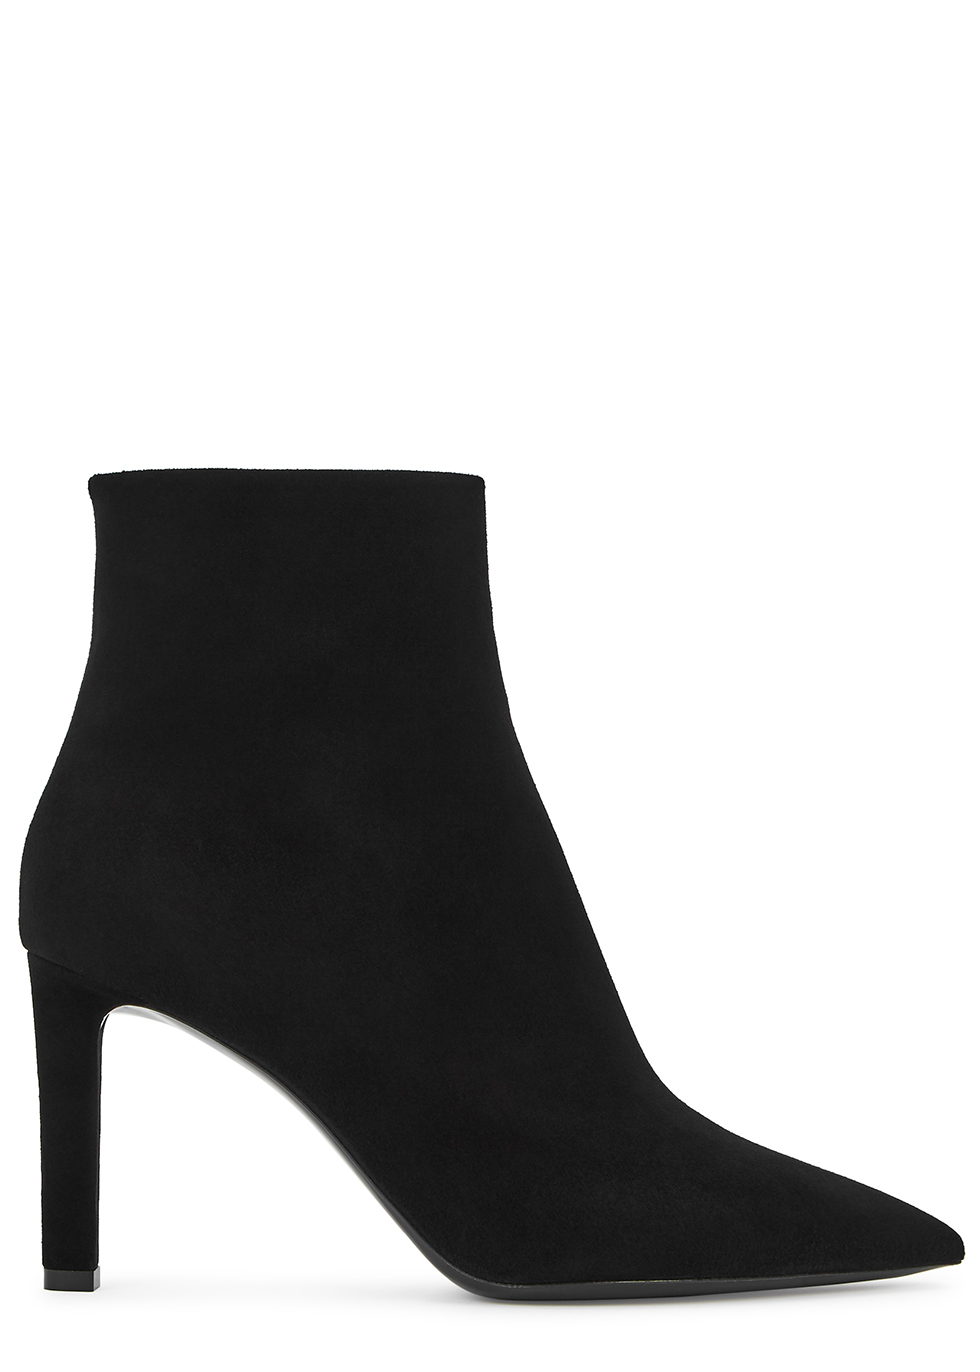 Kate 85 black suede ankle boots